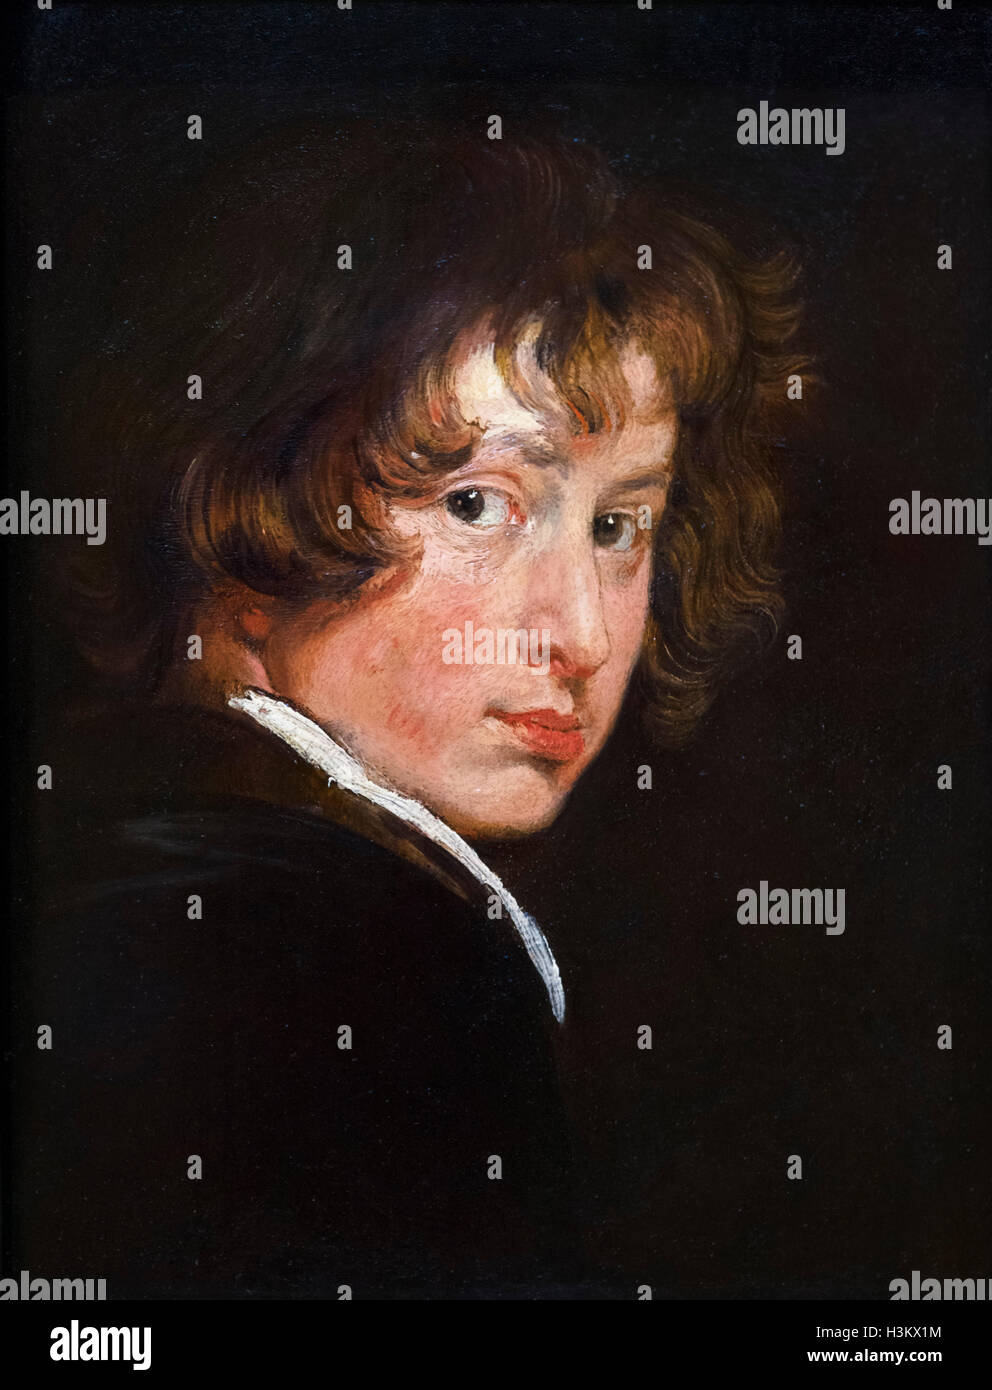 The Flemish artist, Sir Anthony van Dyck (1599 -1641), self-portrait at the age of around 15, oil on wood, c.1614. Stock Photo